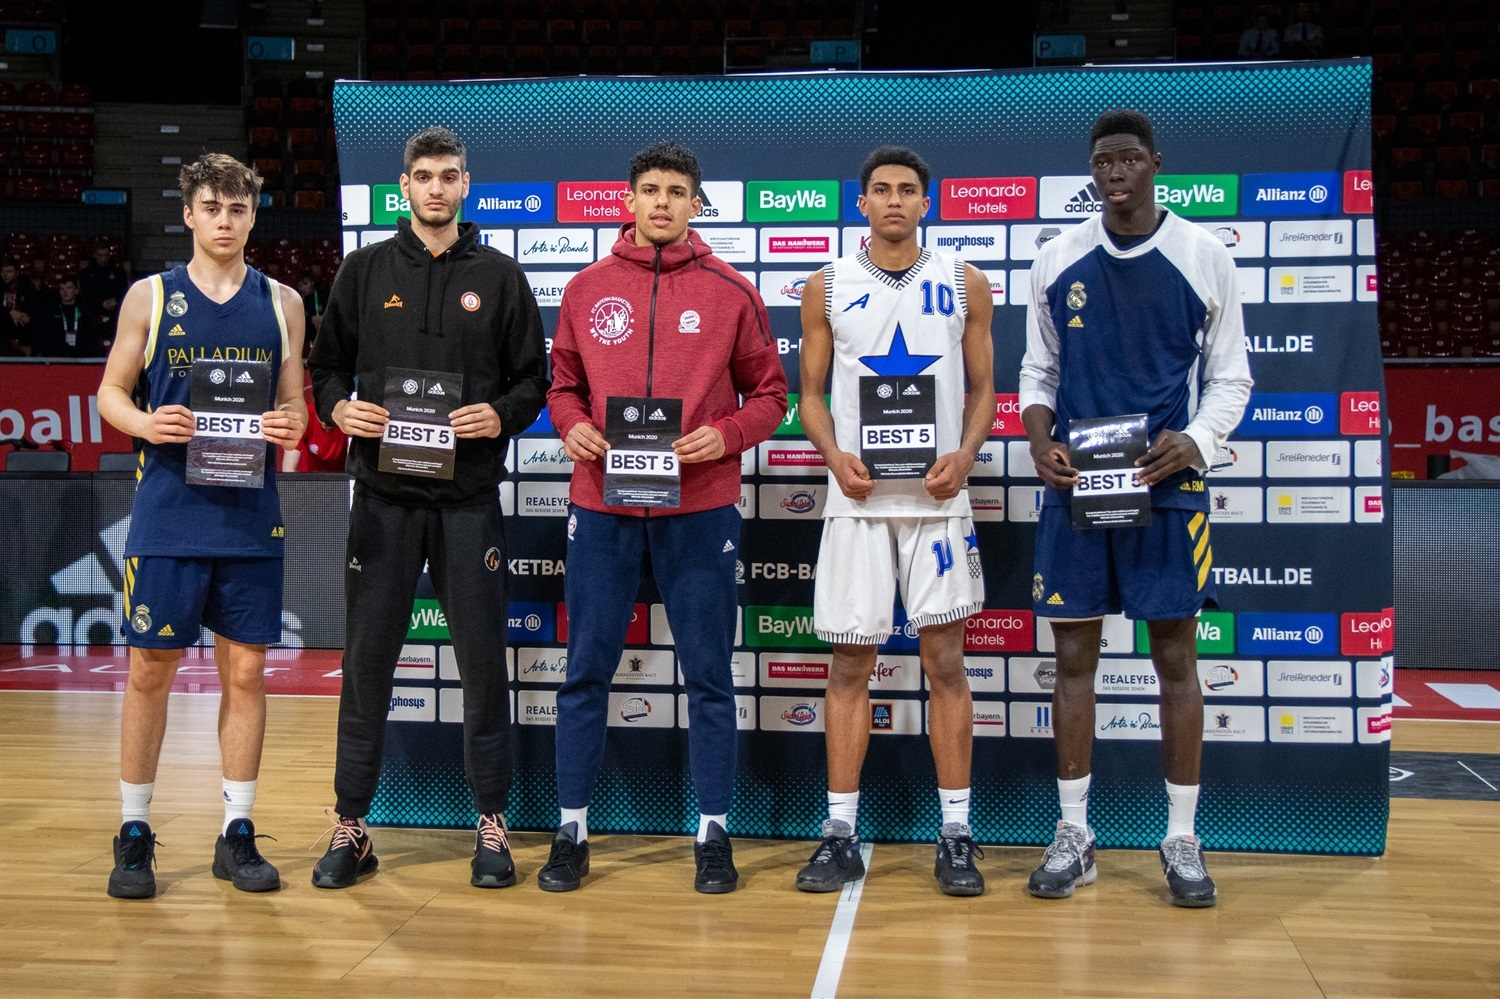 All-Tournament Team ANGT Munich 2020 (photo Begum Unal - Bayern) - JT19